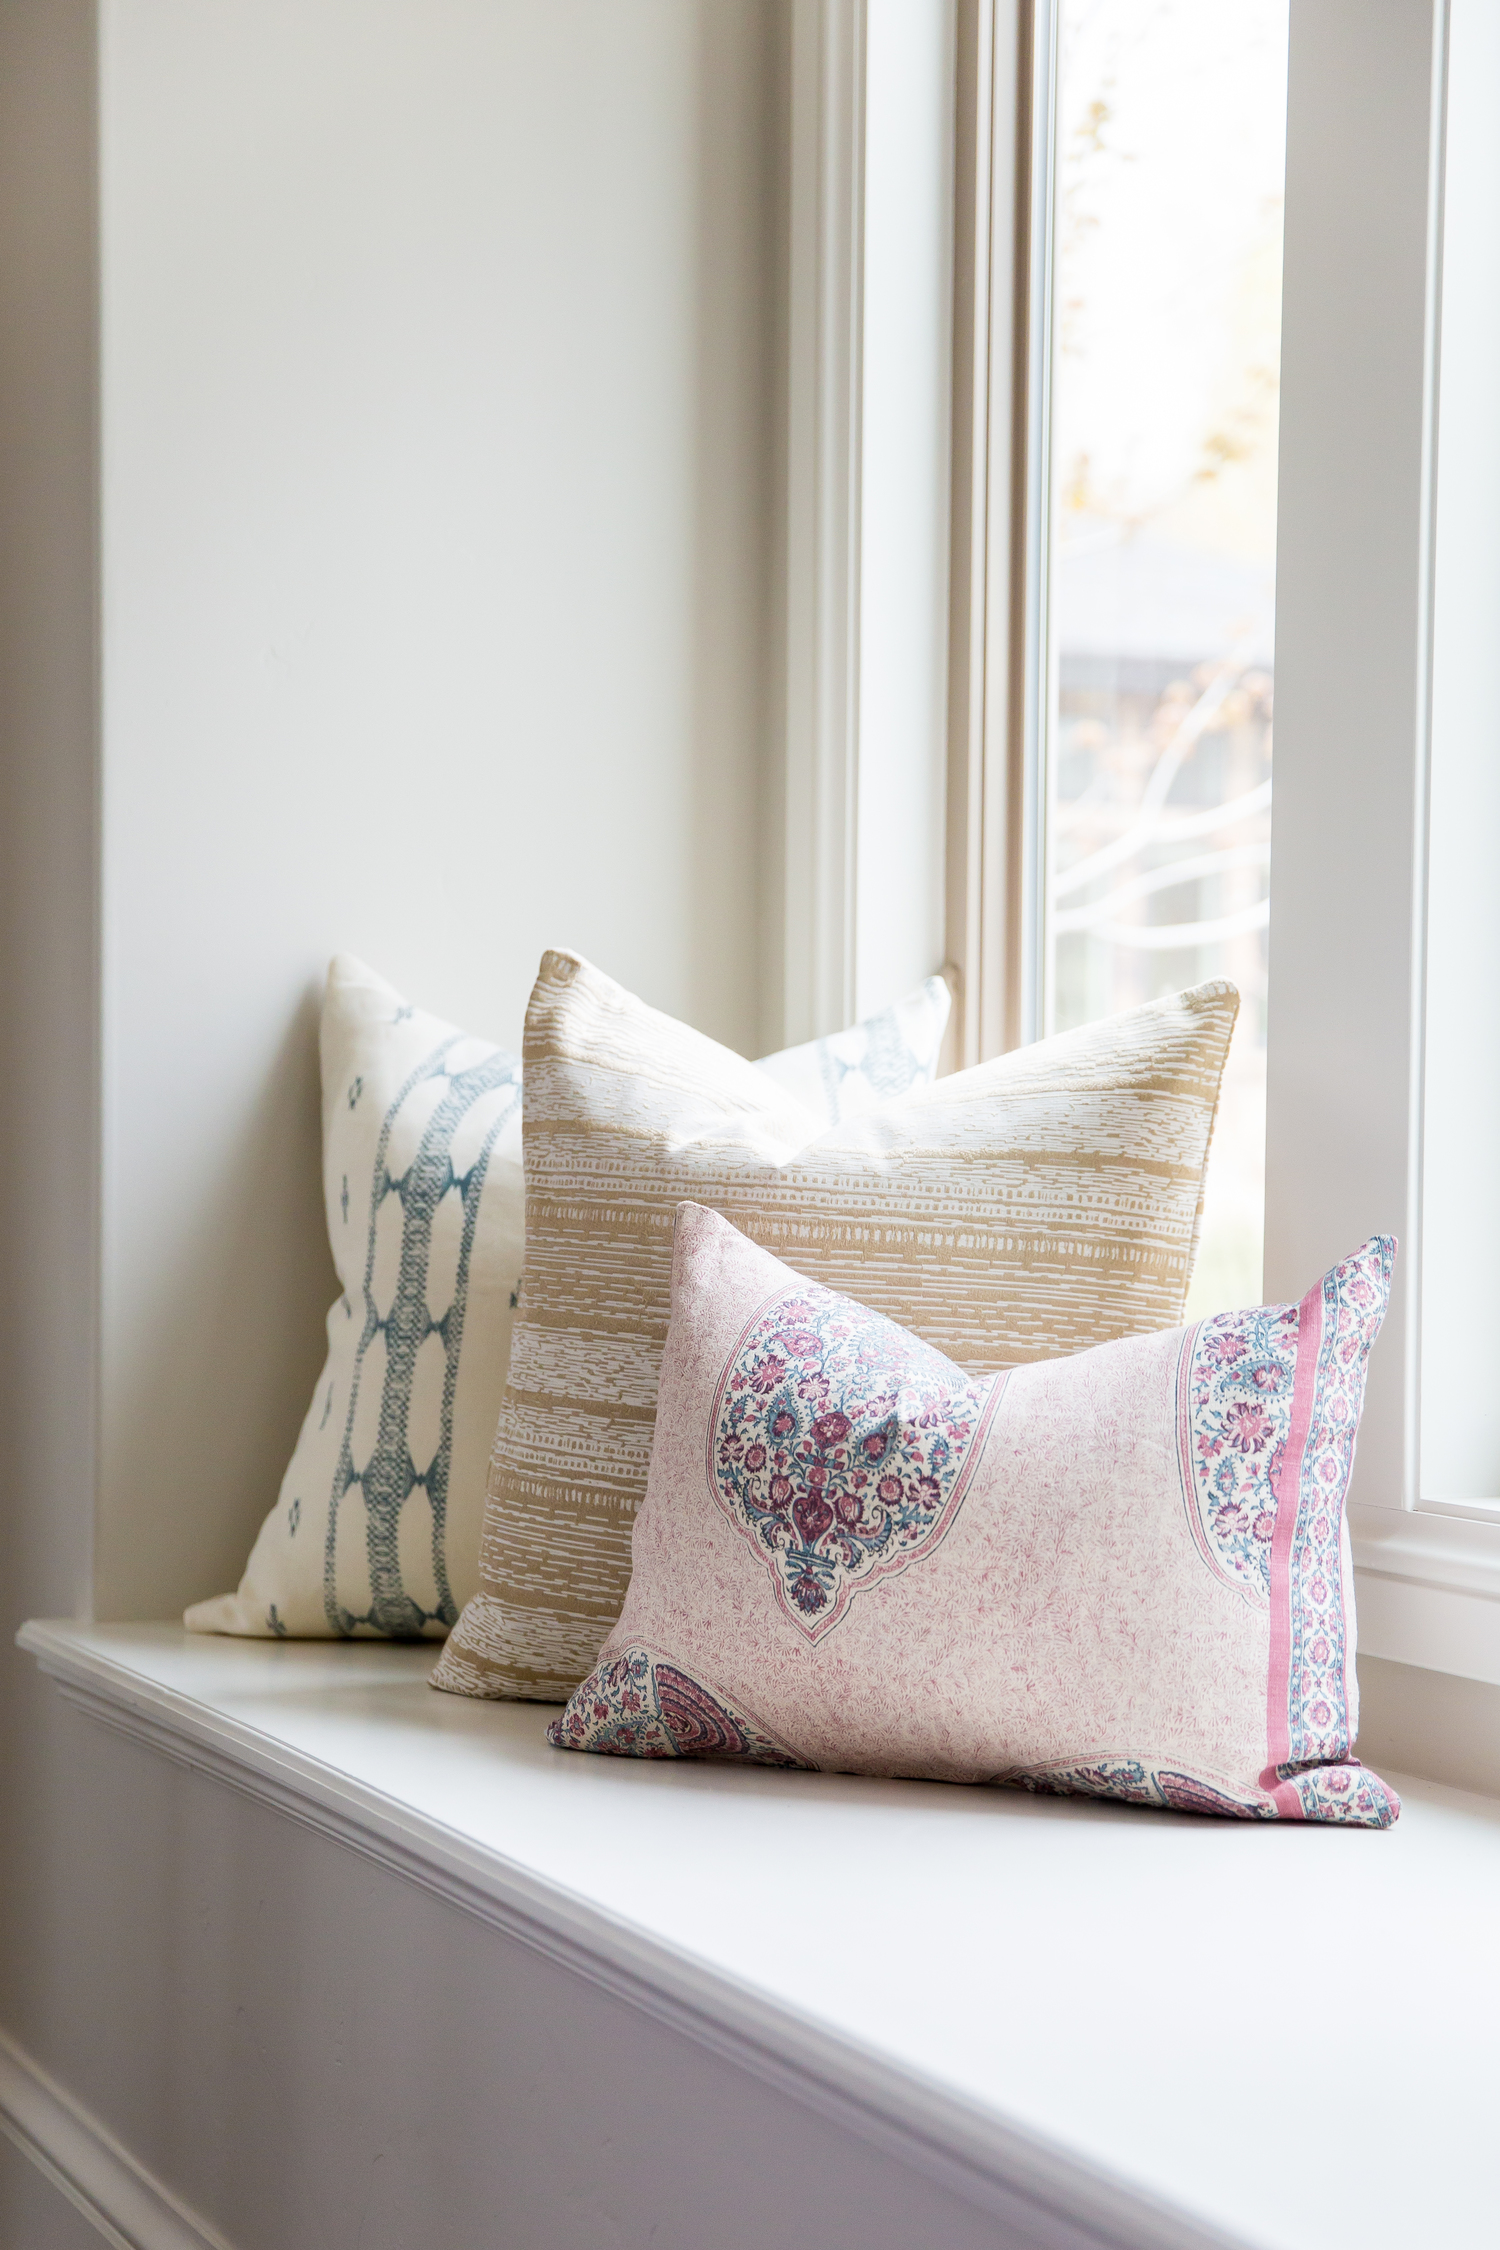 Decorative pillows in daybed of foothill home